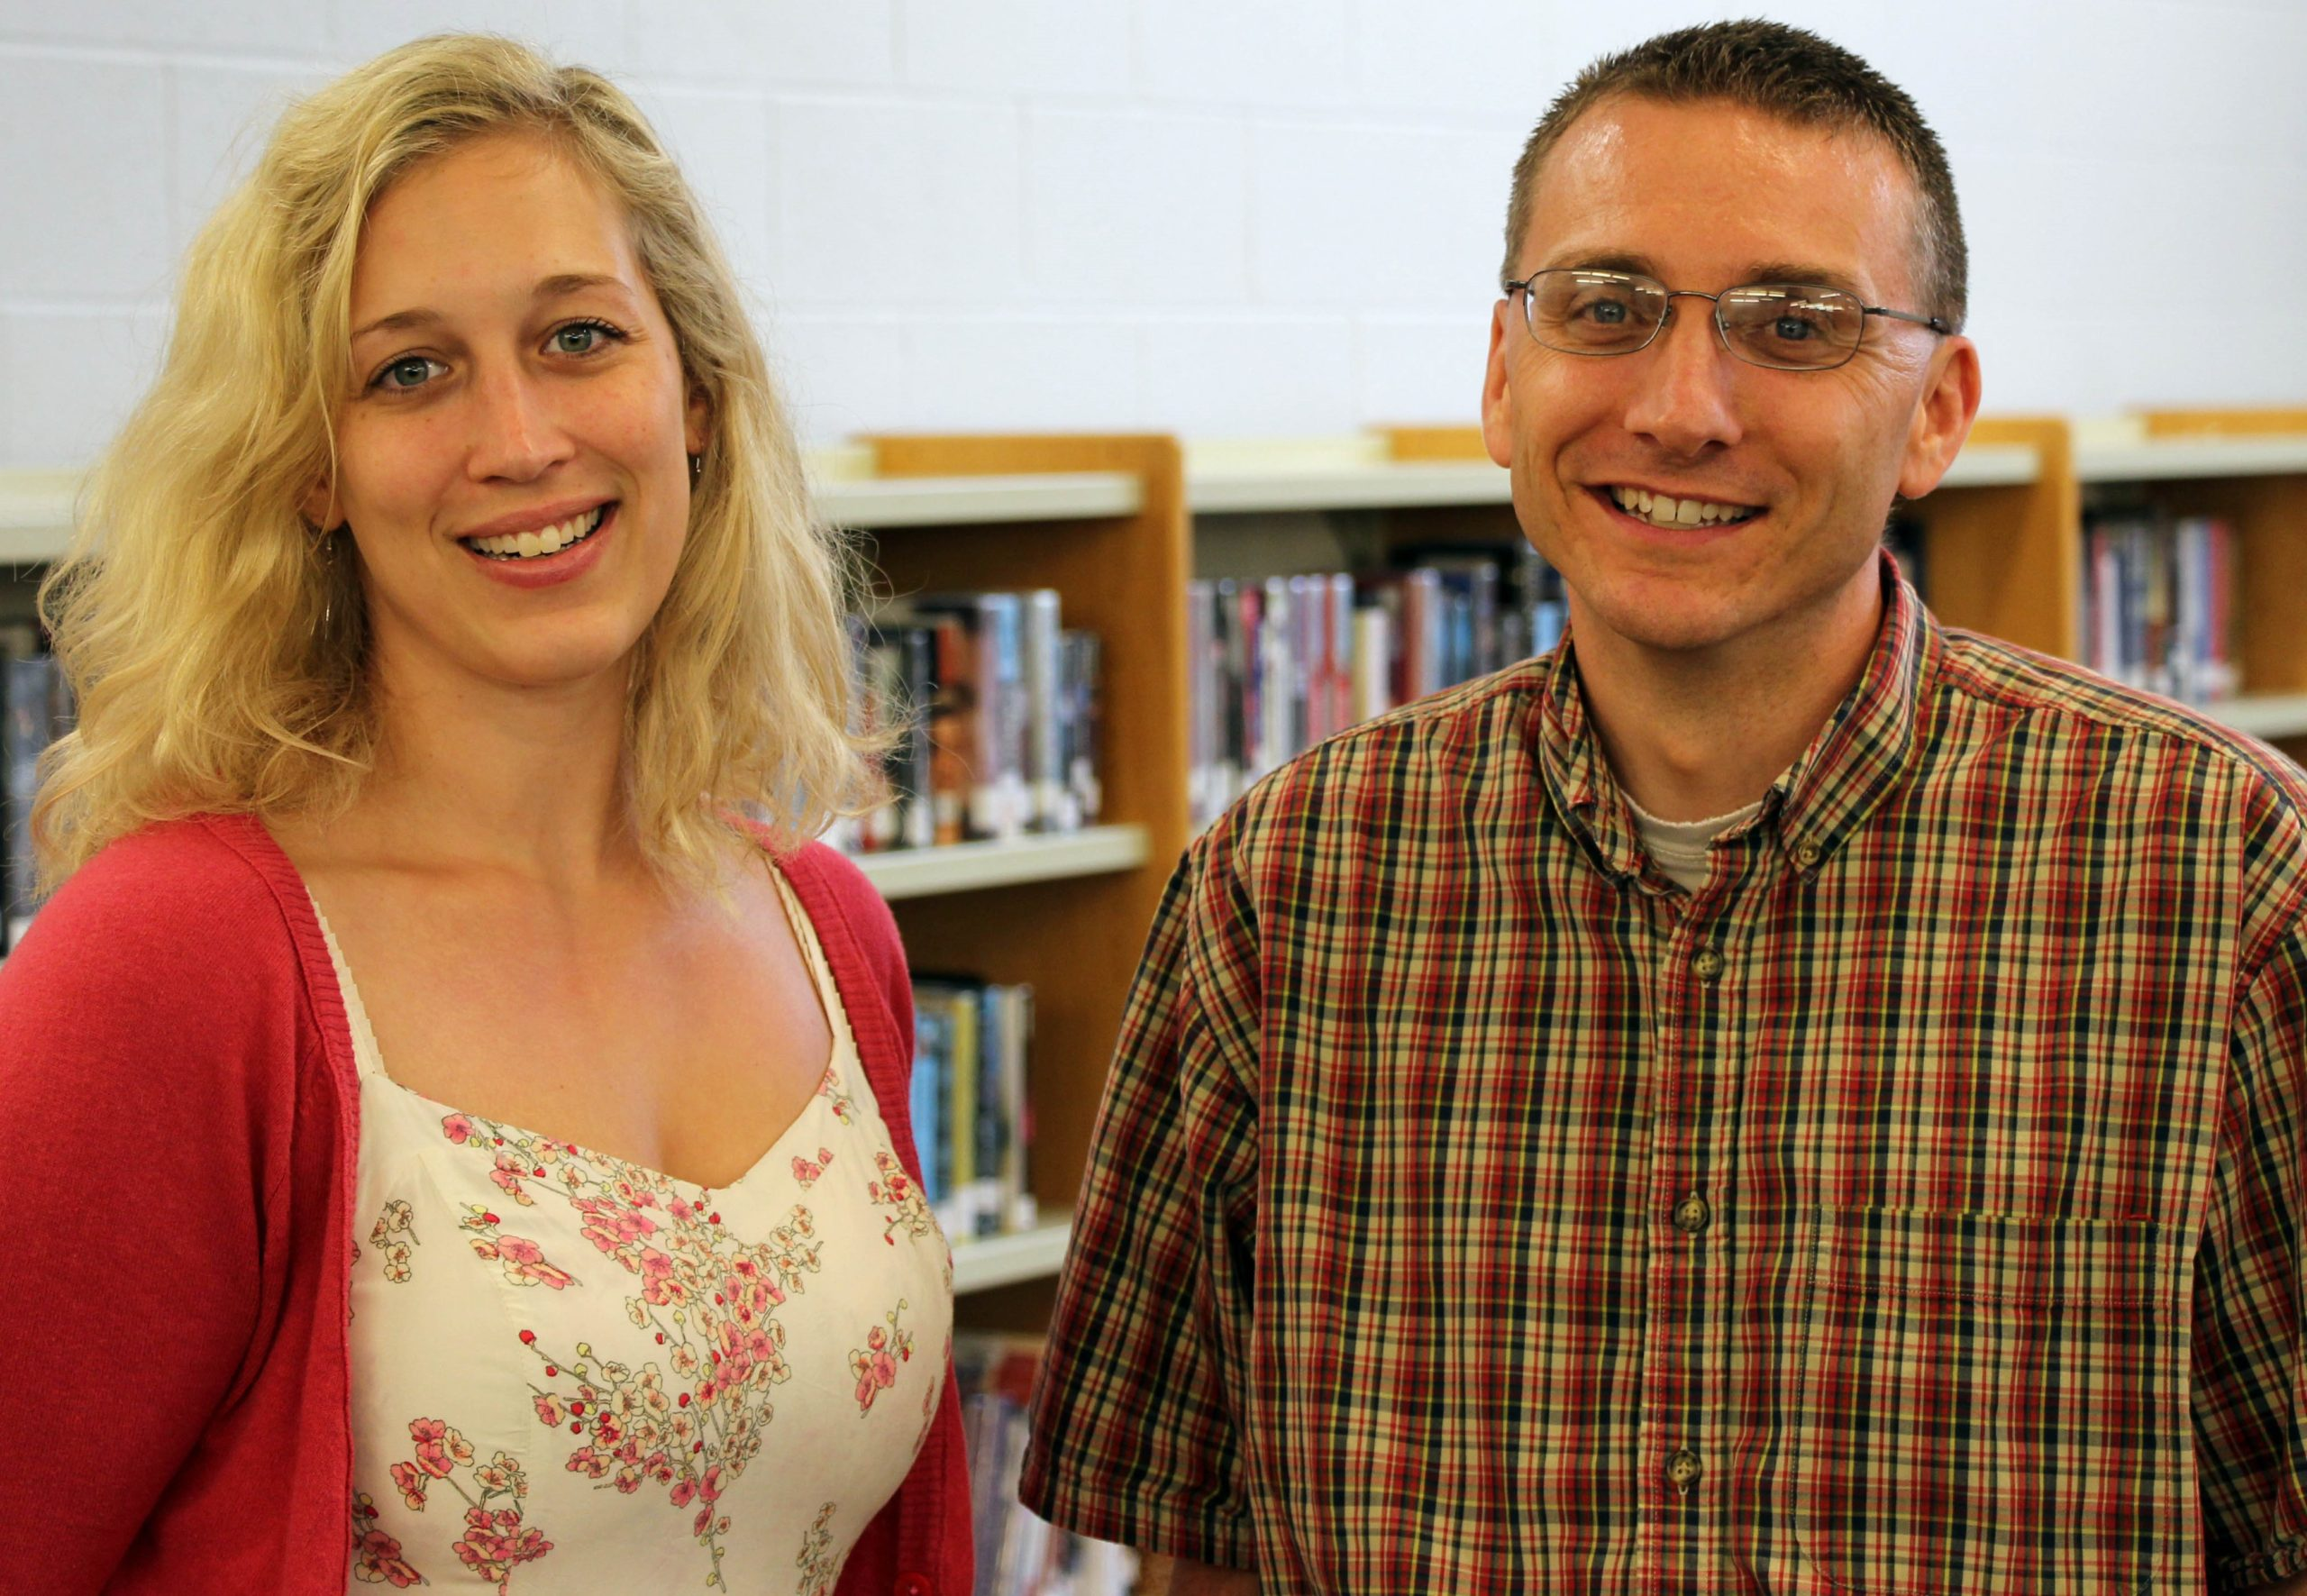 These Chester County Educators Among Top Teachers Around the Main Line, Western Suburbs